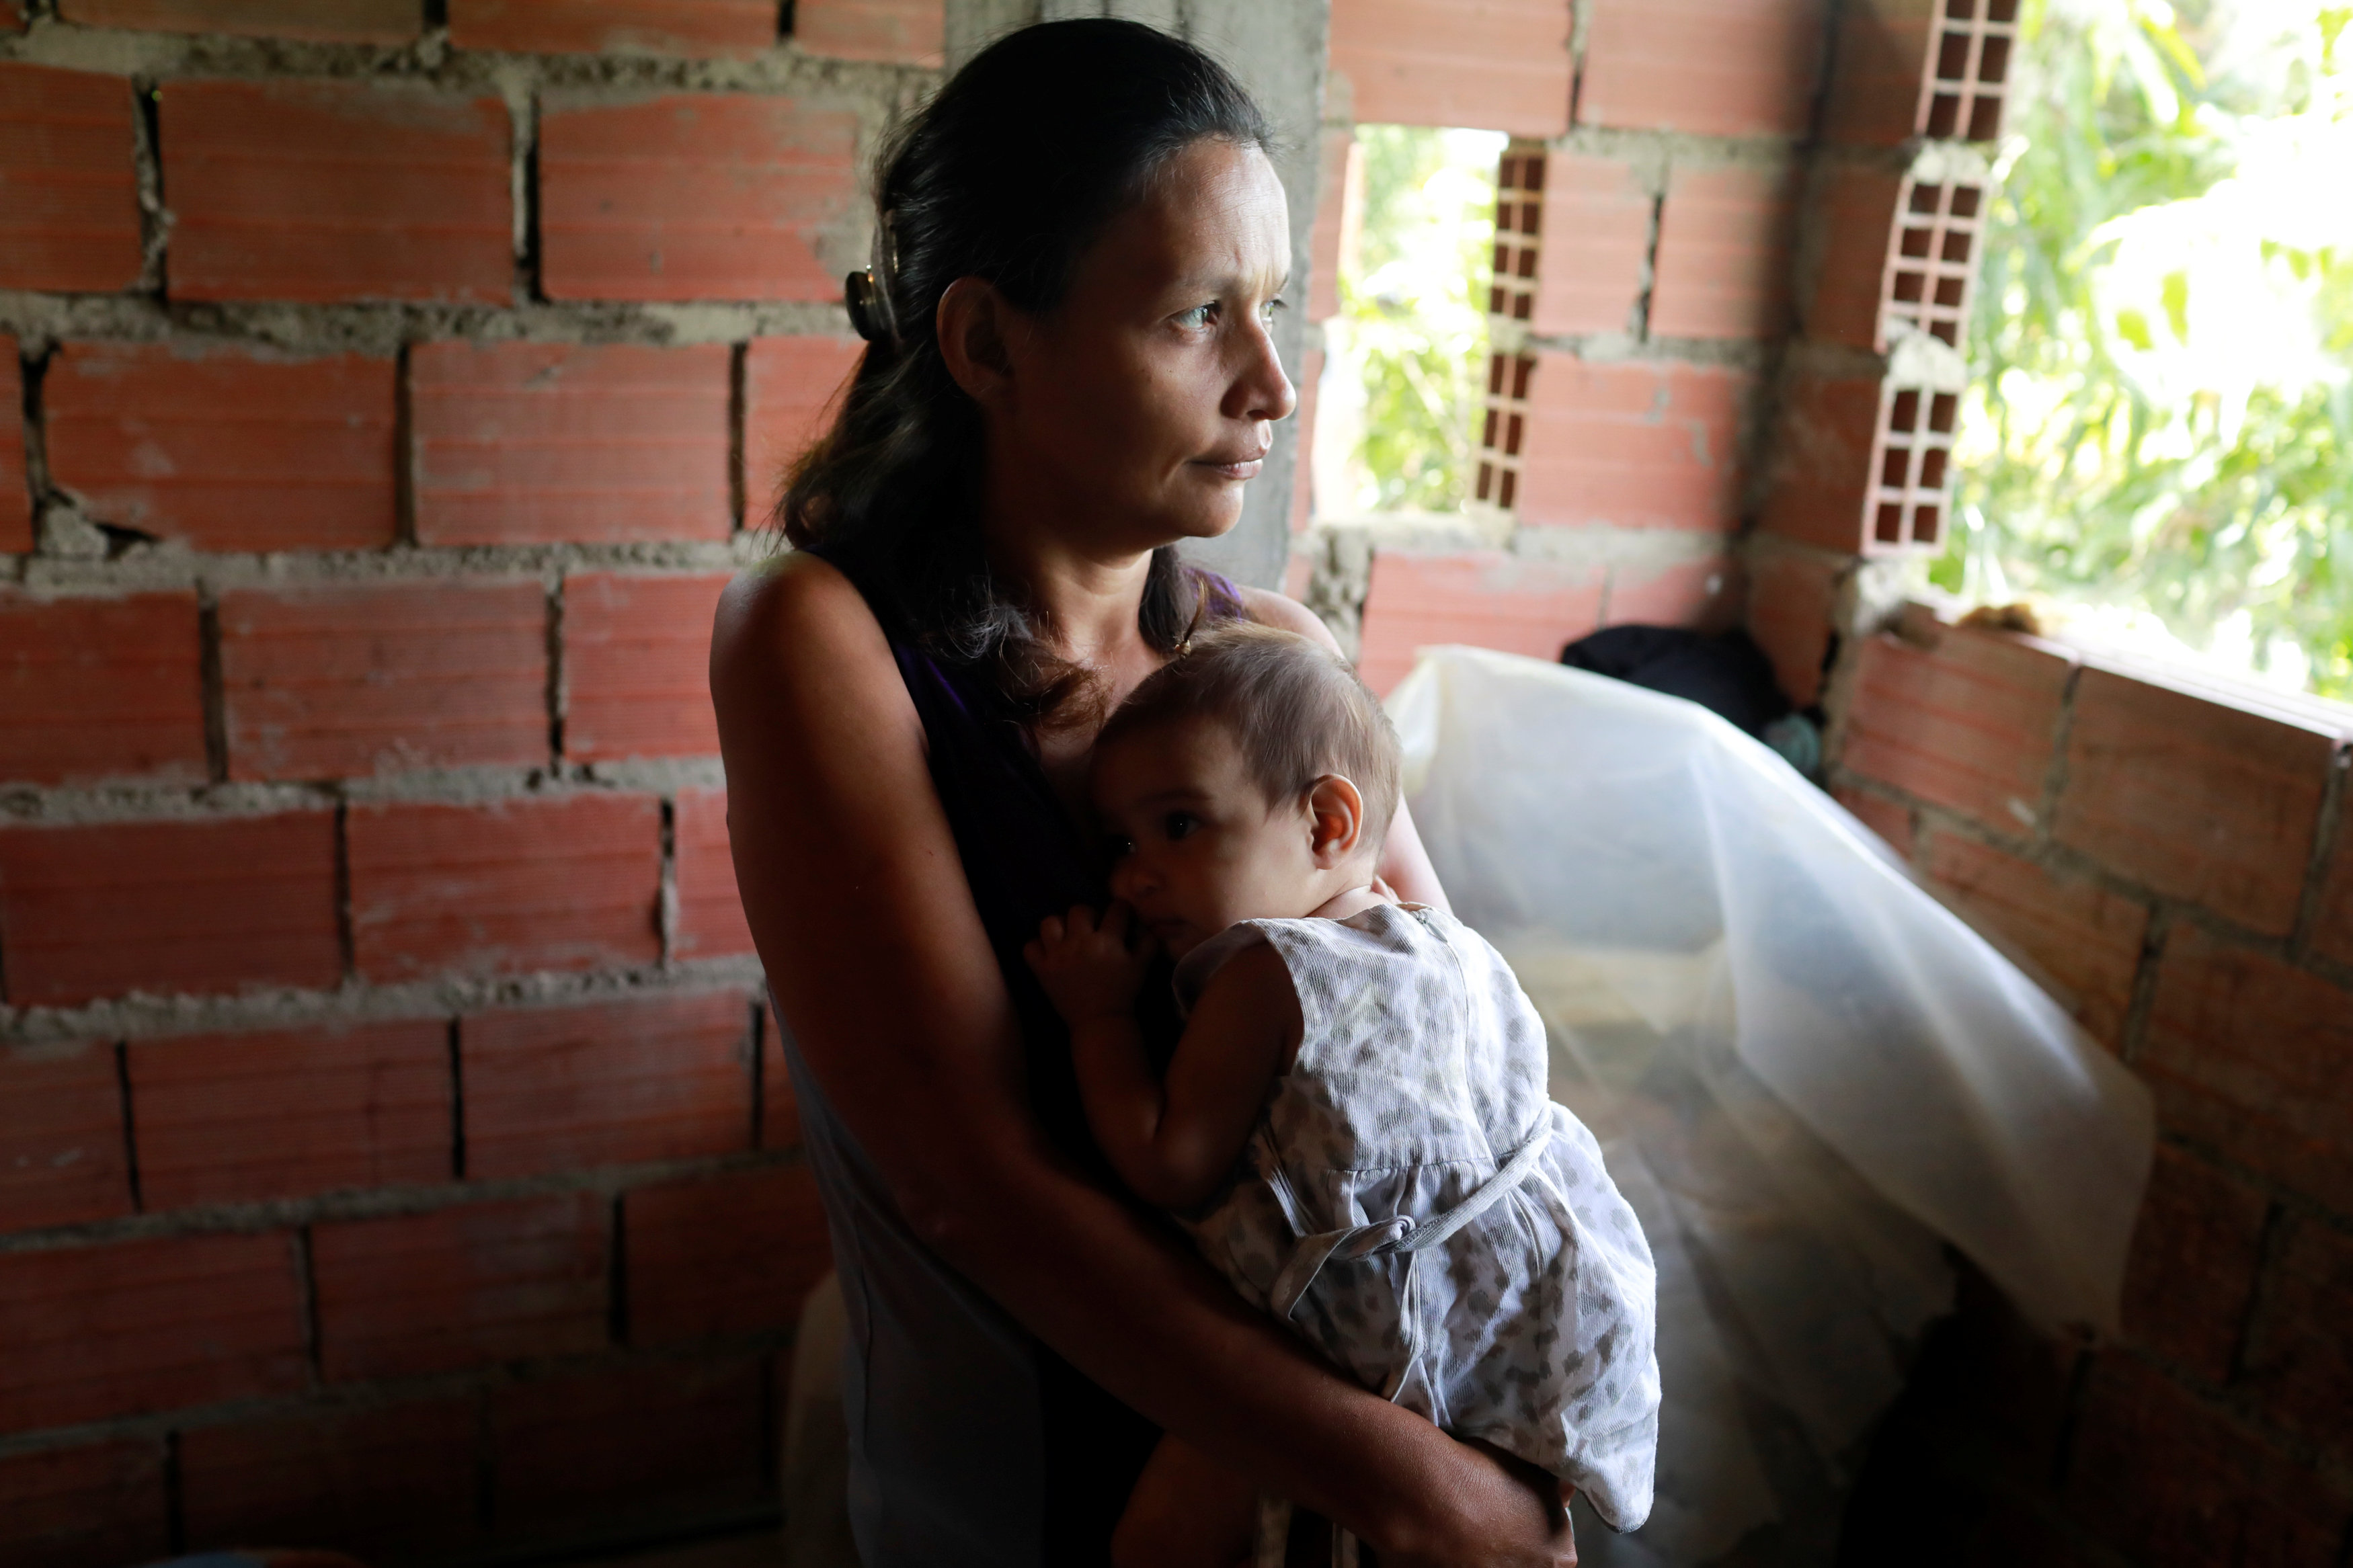 Maryorie Berrios holds Luinyerlin Berrios, who was diagnosed with malnutrition, at her hovel in Caracas, Venezuela June 26, 2017. Picture taken June 26, 2017. REUTERS/Marco Bello